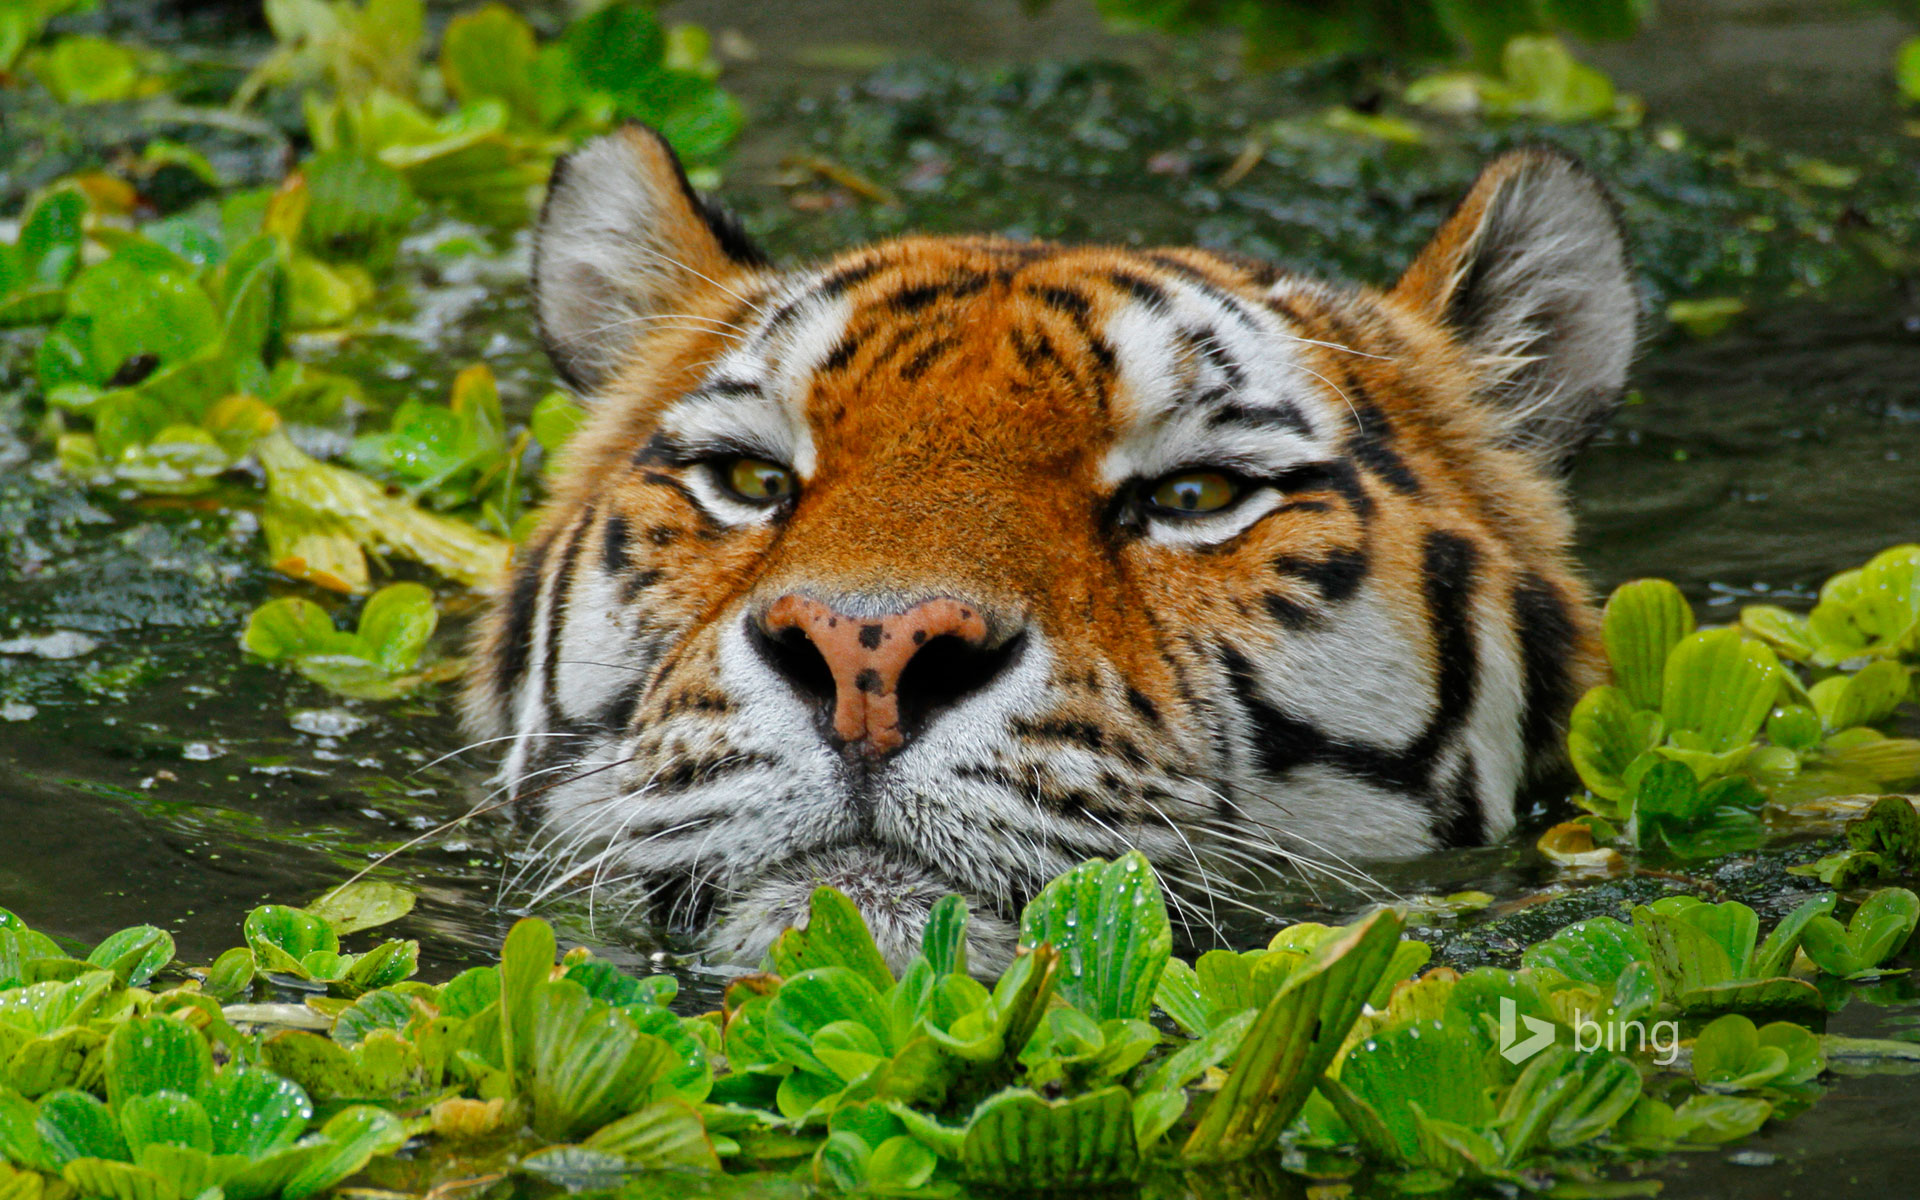 A Siberian tiger takes a swim at the Antwerp Zoo in Belgium